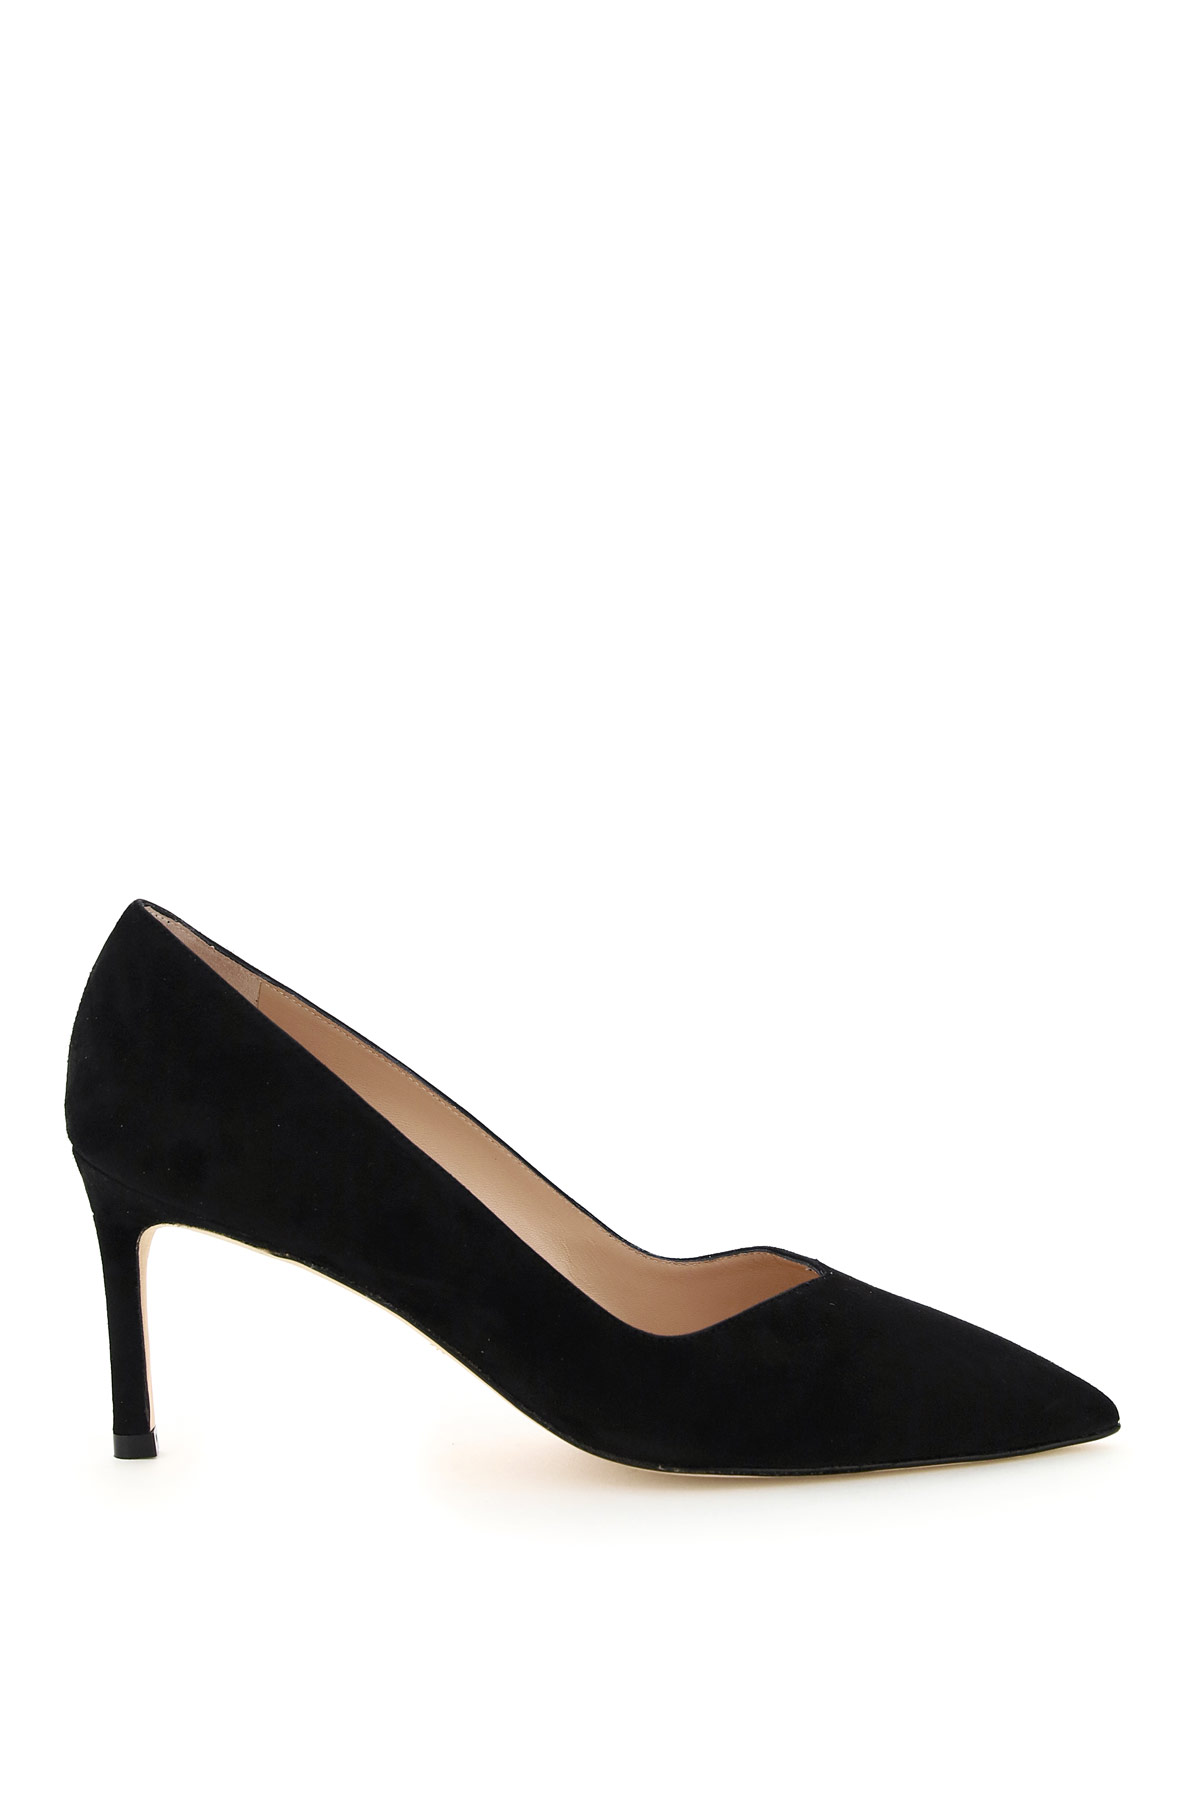 STUART WEITZMAN ANNY SUEDE PUMPS 70 40 Black Leather